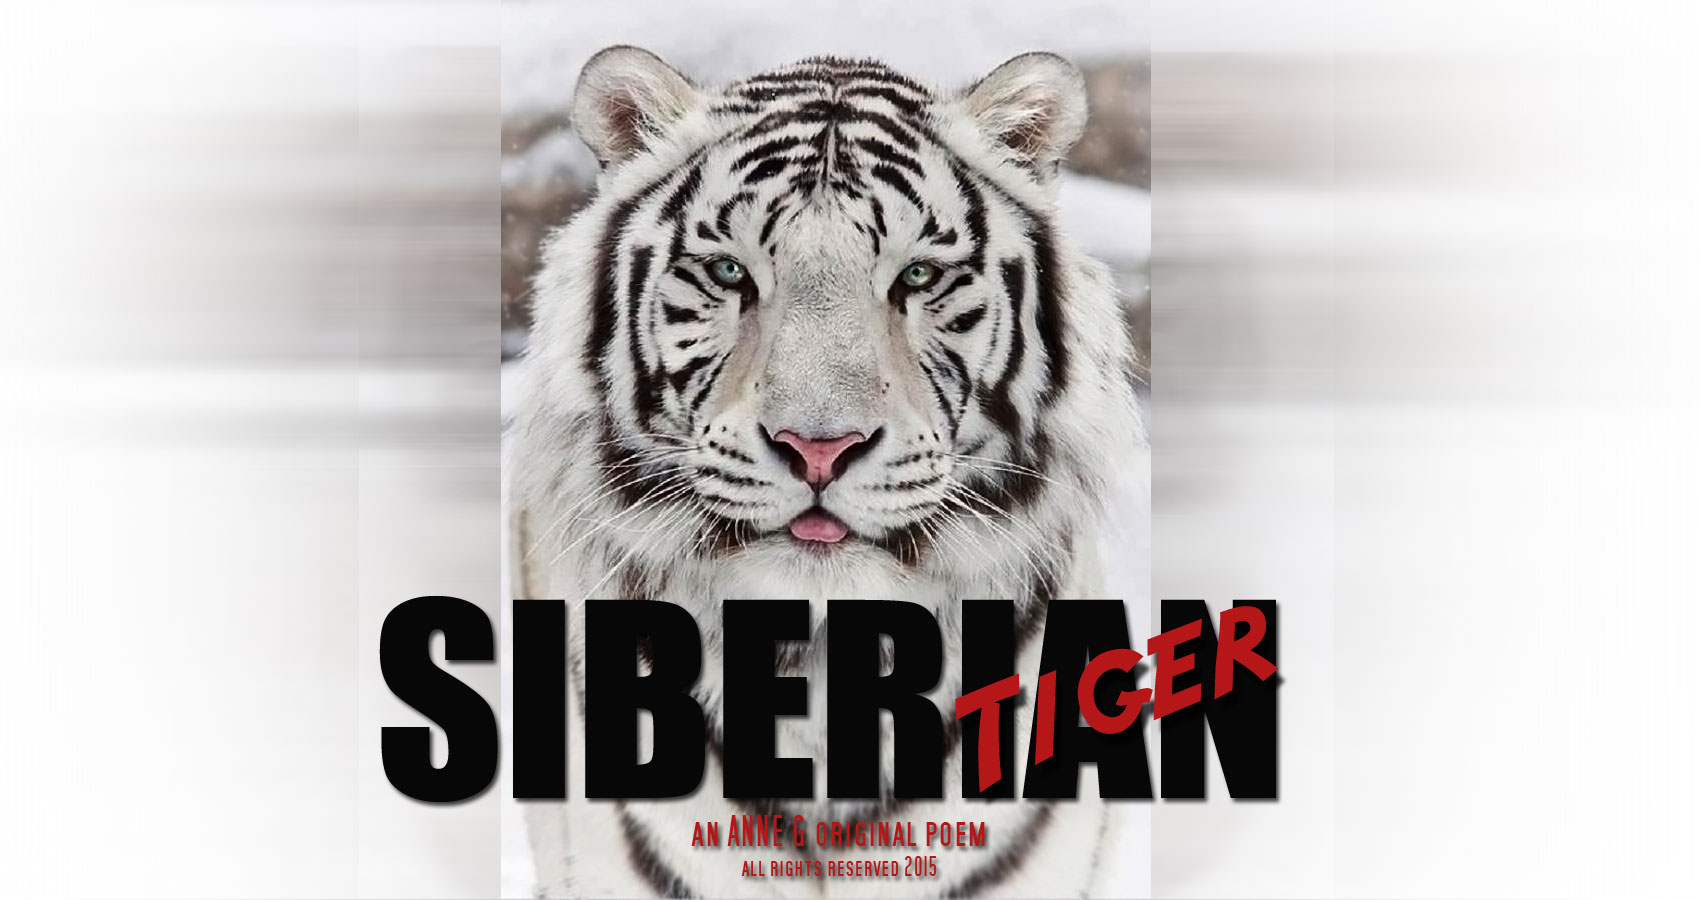 Siberian Tiger an Anne G Original Poem at spillwords.com